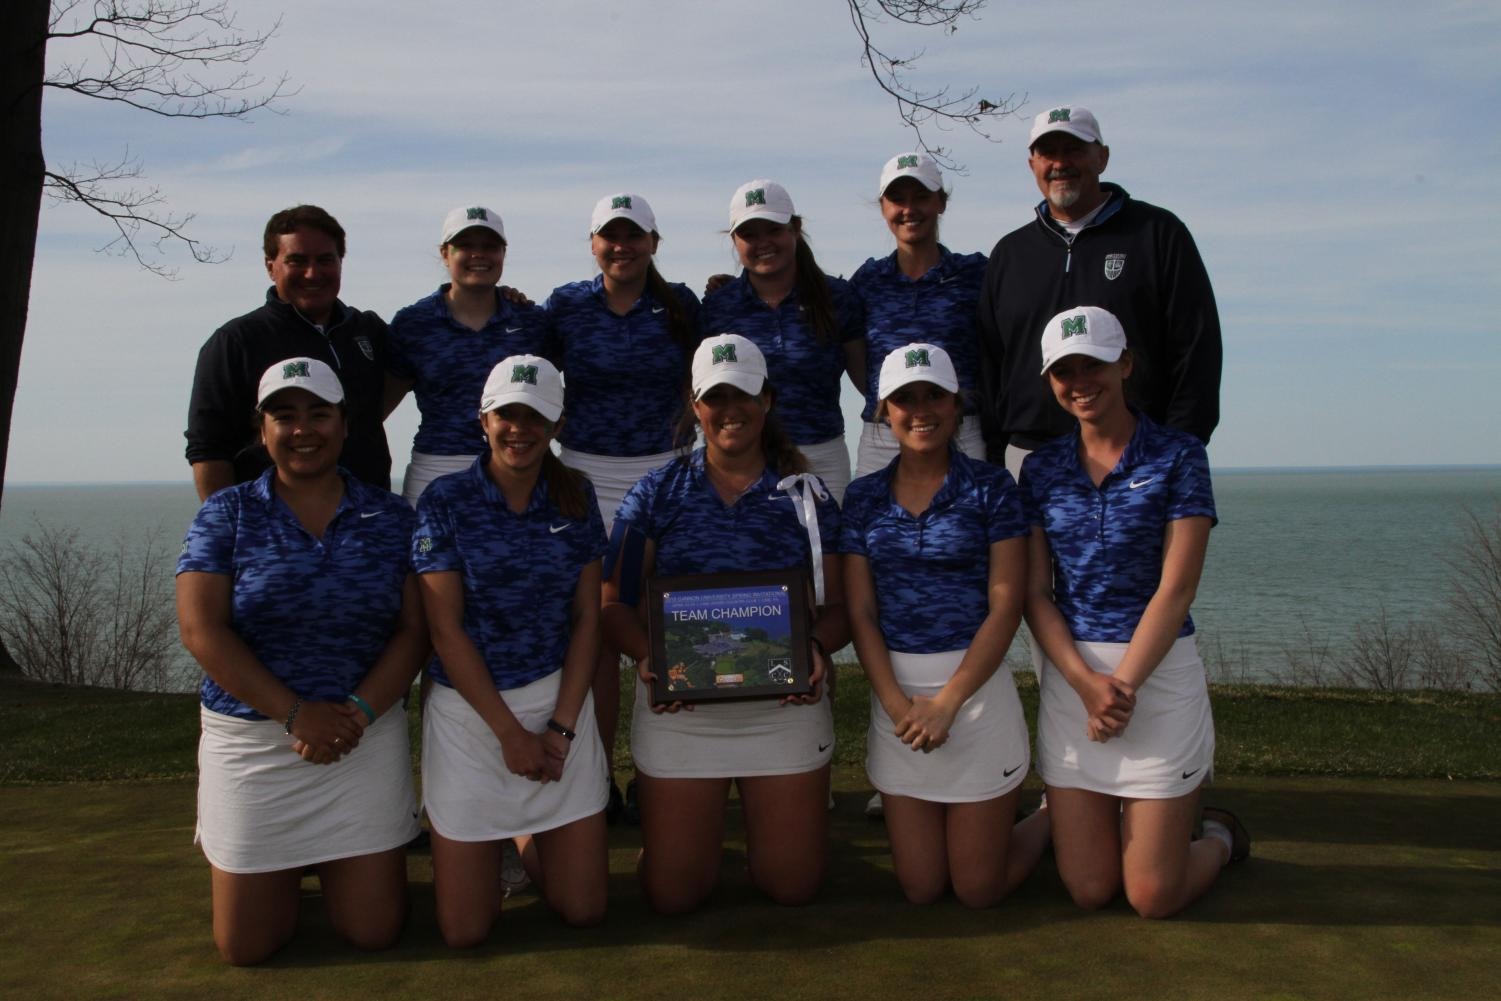 he Mercyhurst women's golf team poses after their tournament victory. The golfers took first place in Mercyhurst's invitational in North East.